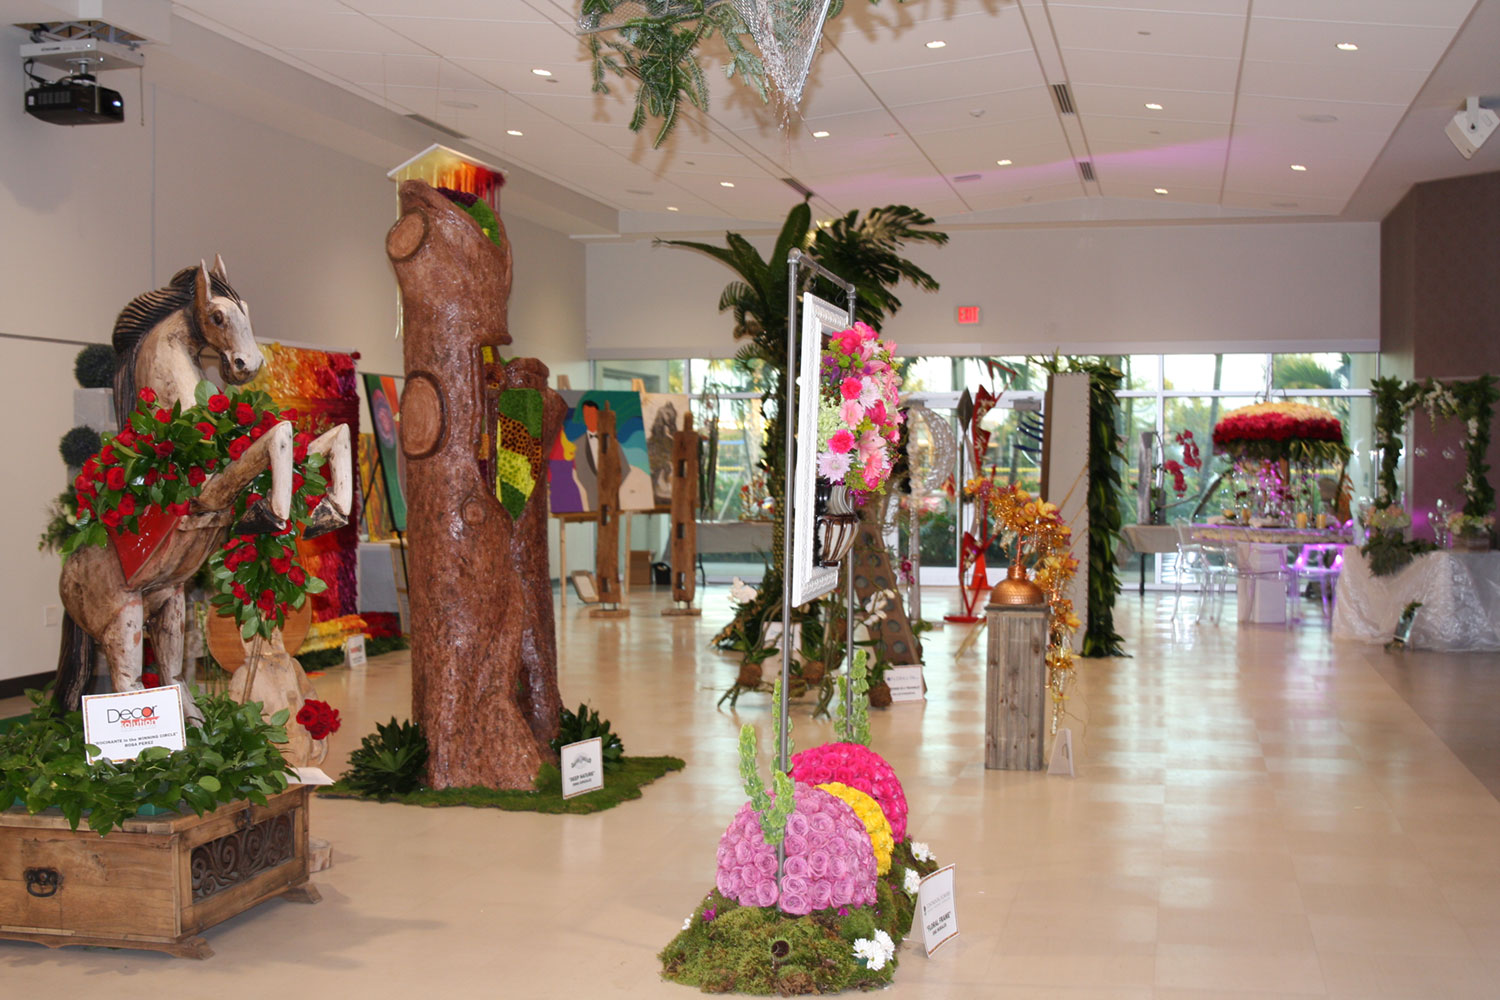 Doral Art and Flowers Festival